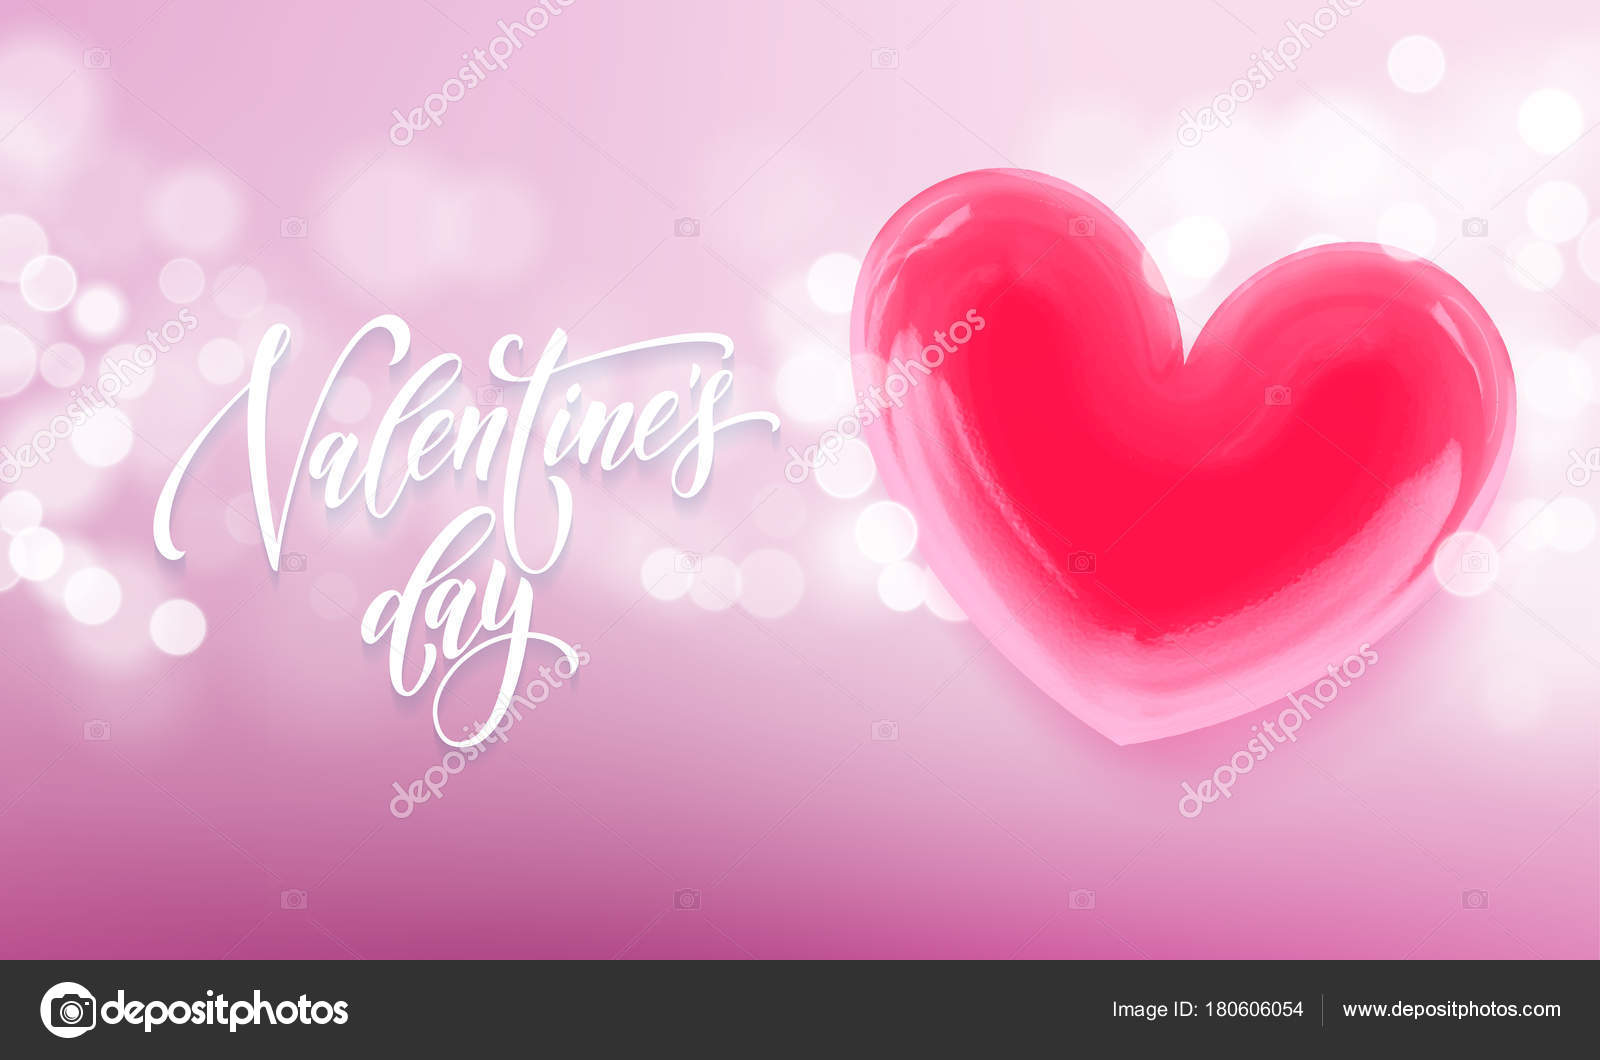 Valentines day greeting card of valentine red crystal heart on pink valentines day greeting card of valentine red crystal heart on pink light shine background vector m4hsunfo